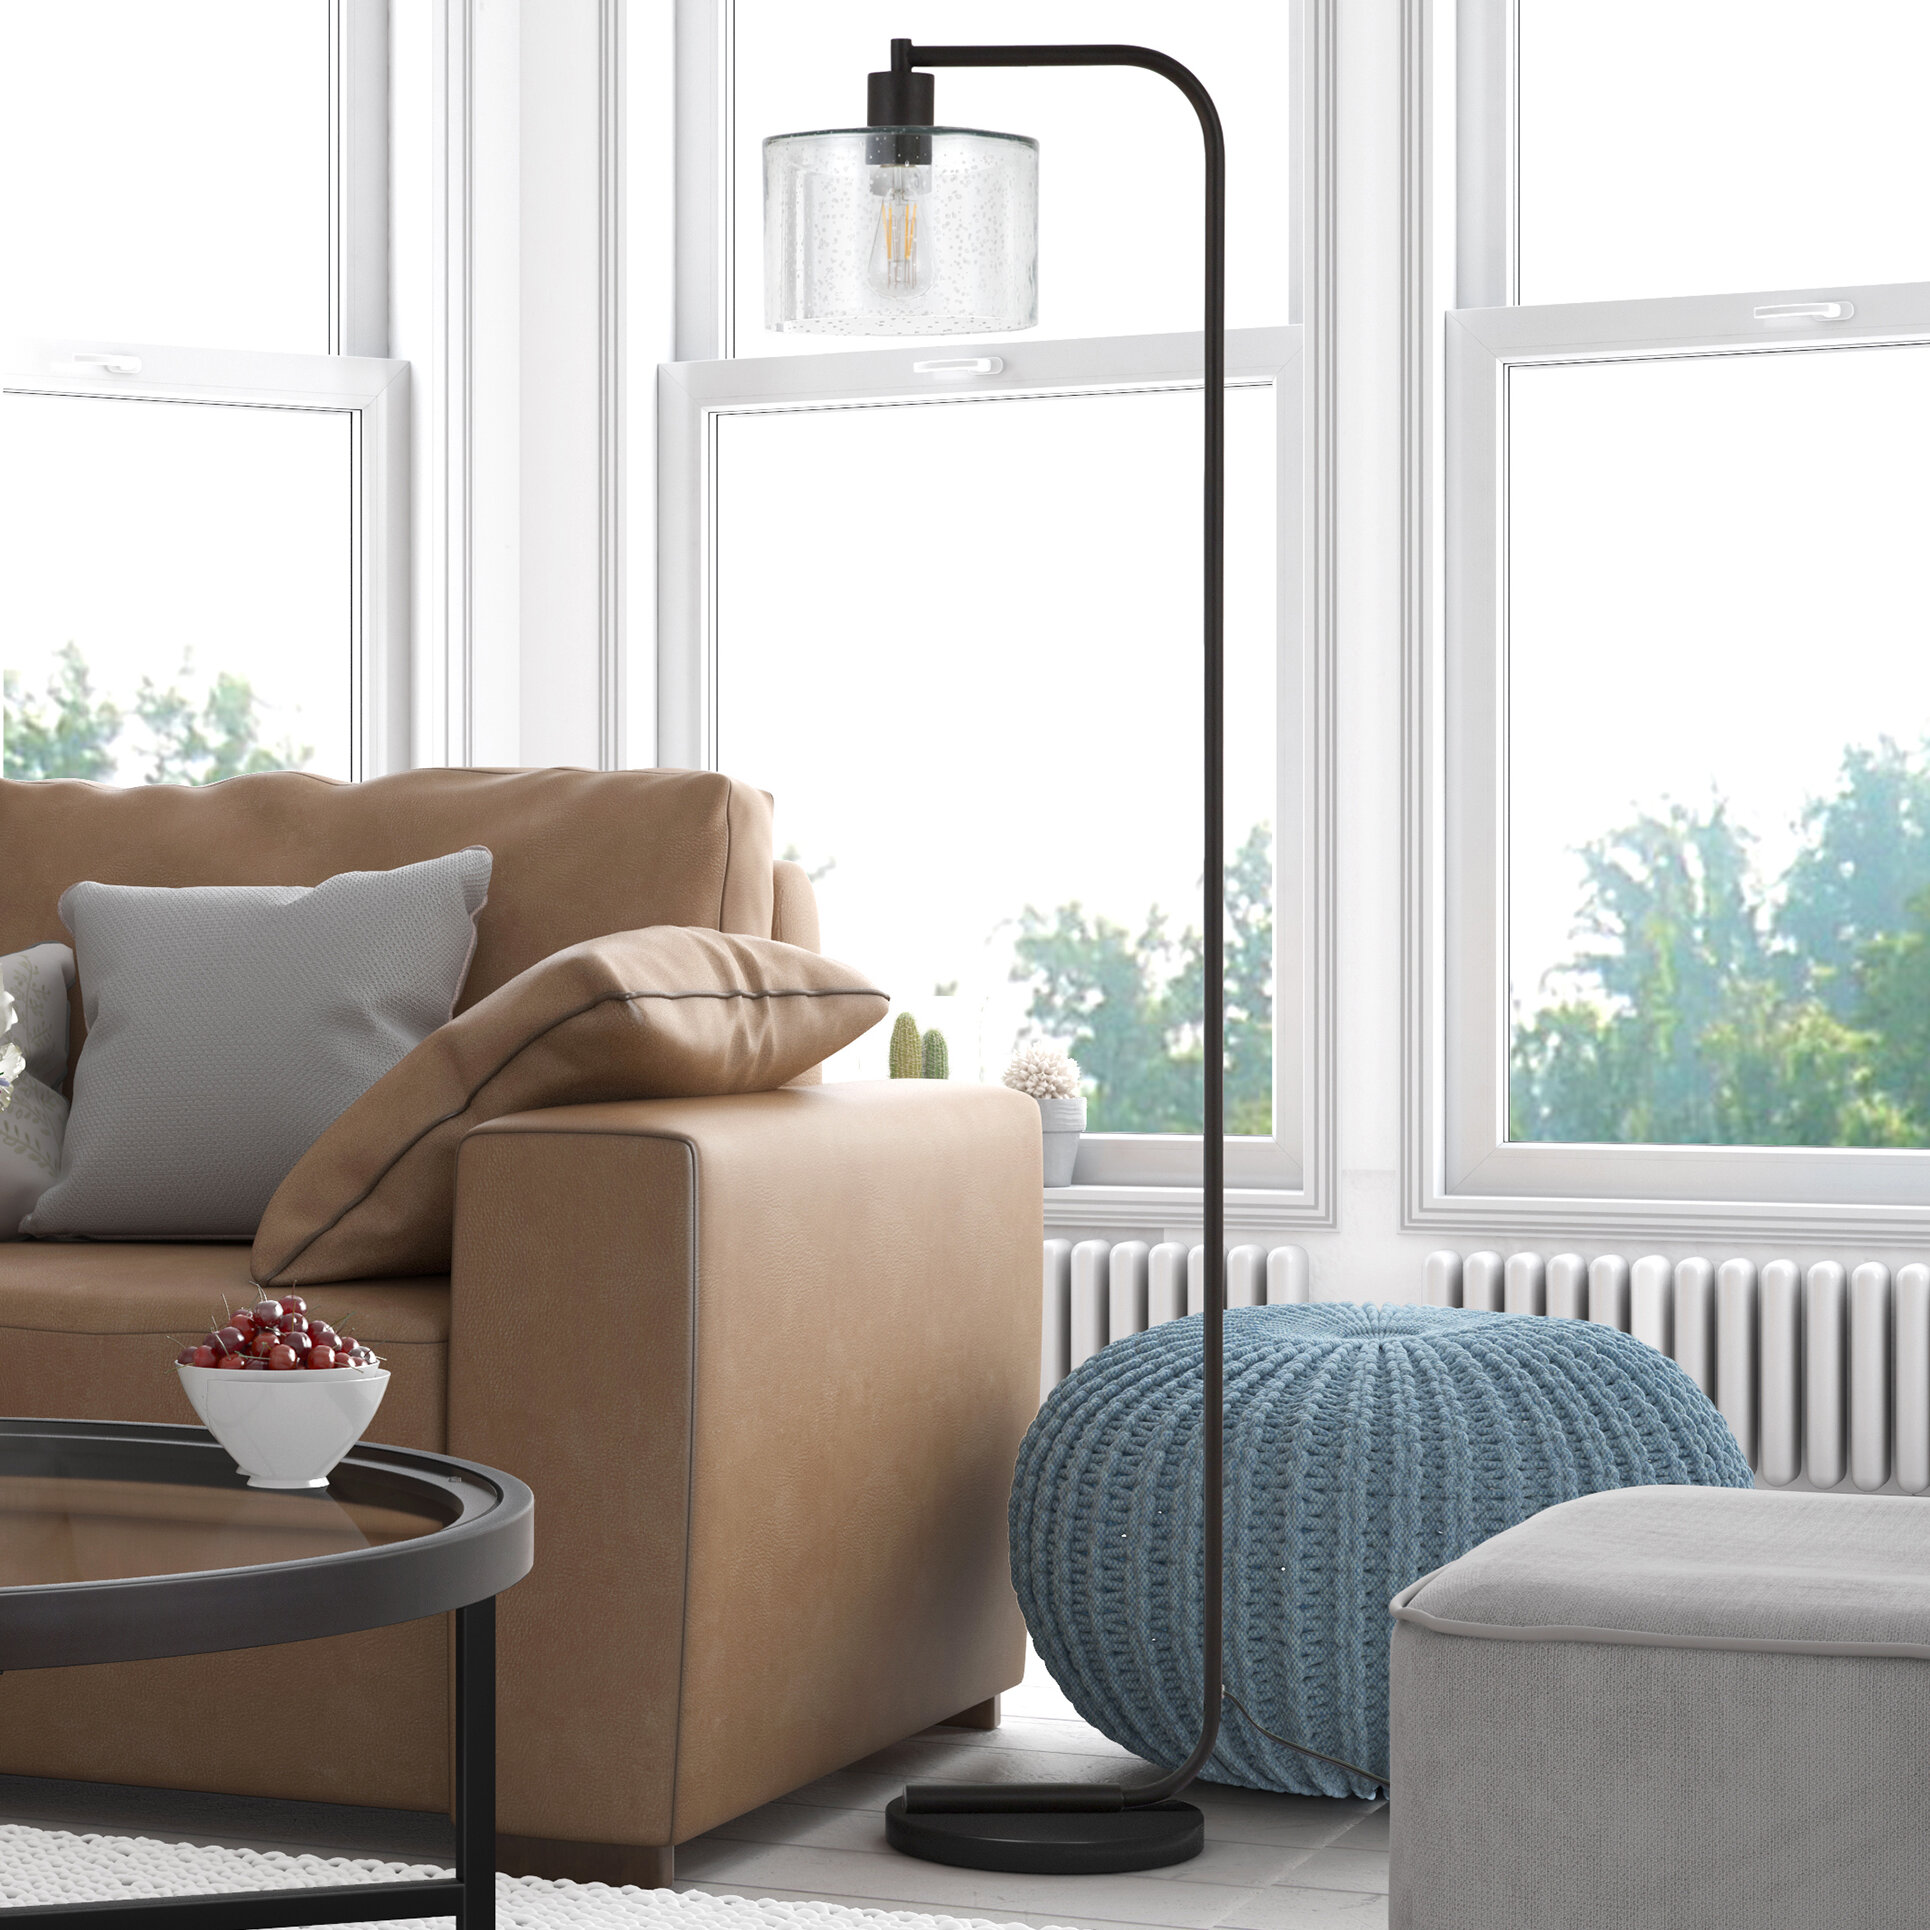 Remarkable Enrique 57 37 Arched Arc Floor Lamp Ibusinesslaw Wood Chair Design Ideas Ibusinesslaworg